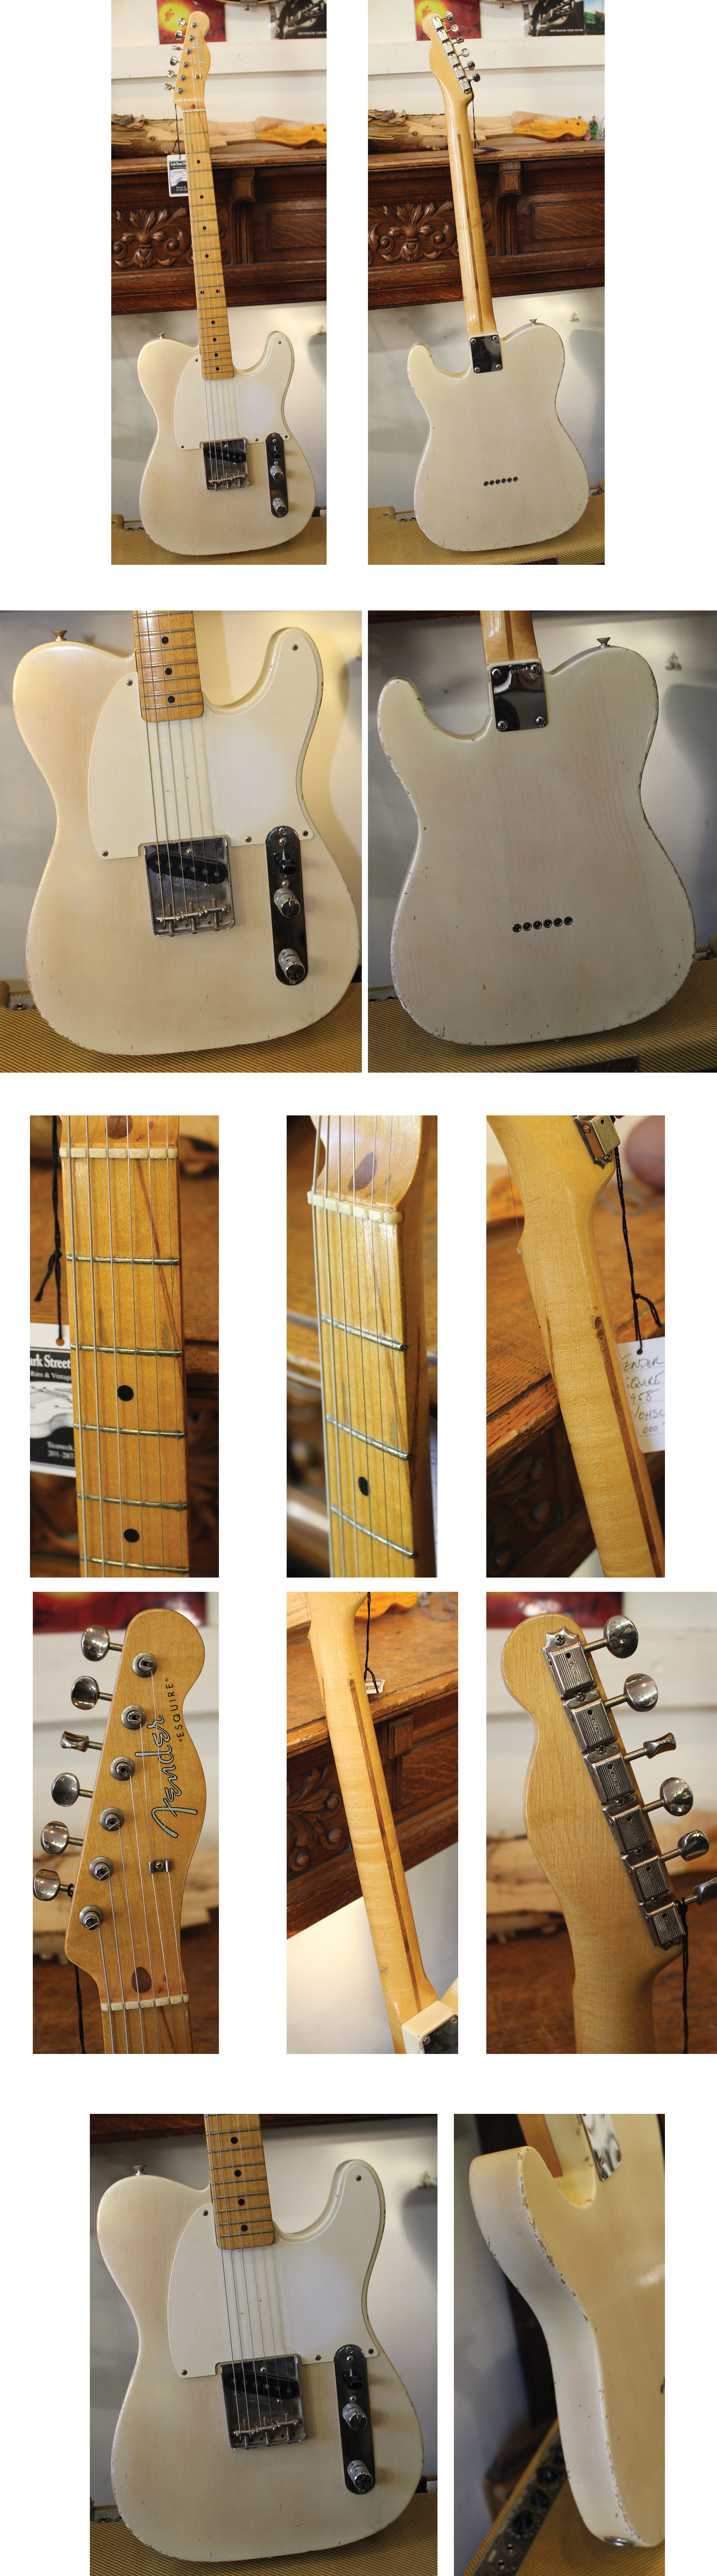 DIY//Build Your Own GUITAR KIT J Master Offset Olympic White w//Block Inlay Neck